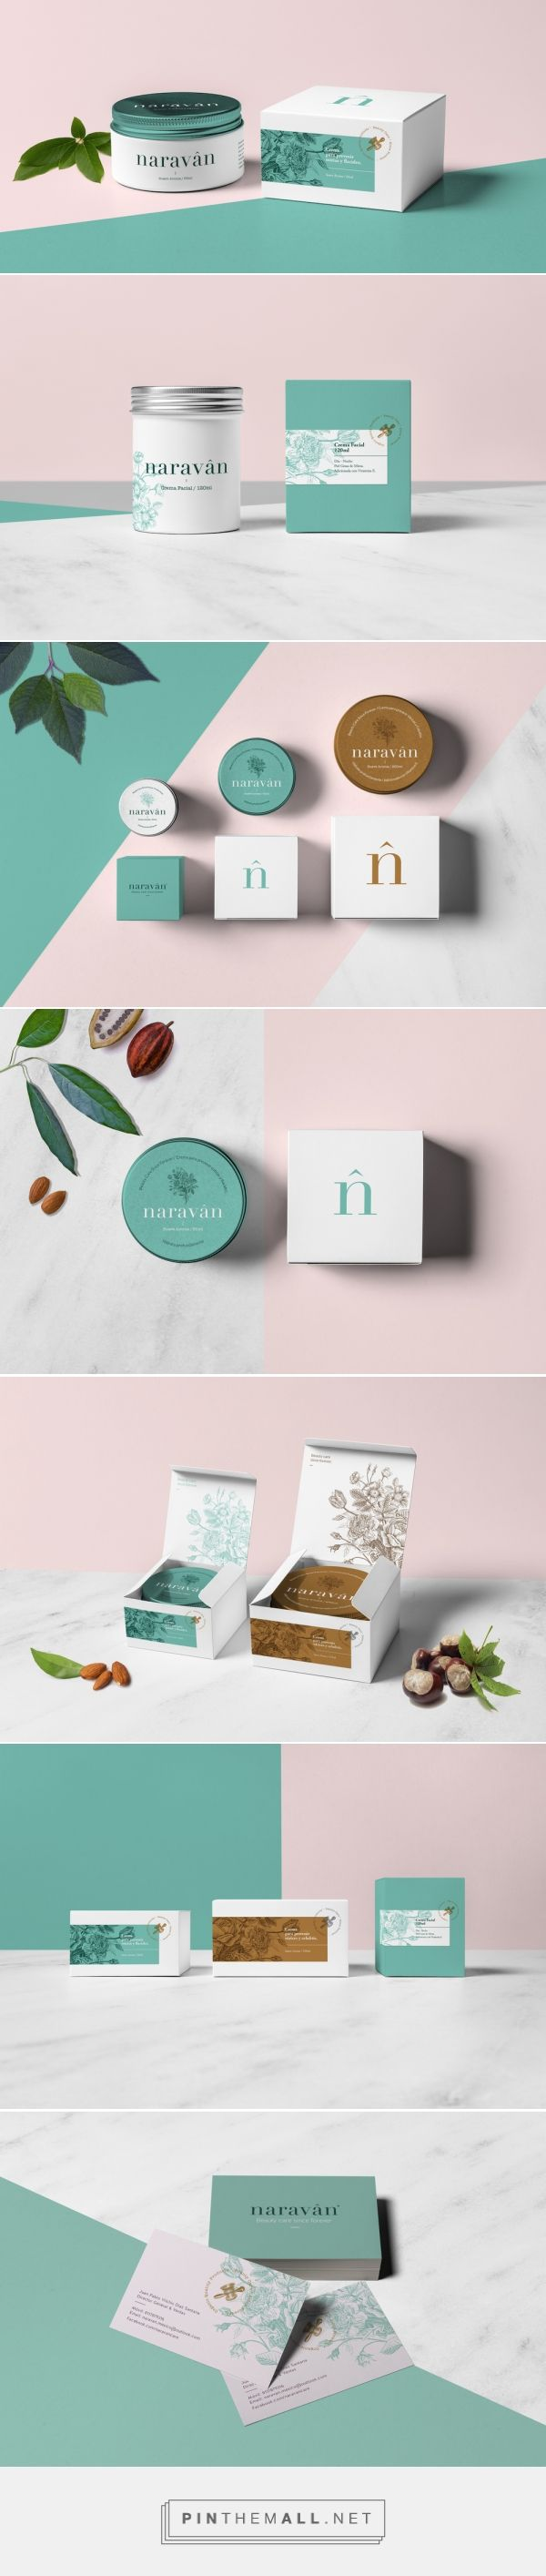 Naravân — natural beauty care products by Memo & Moi